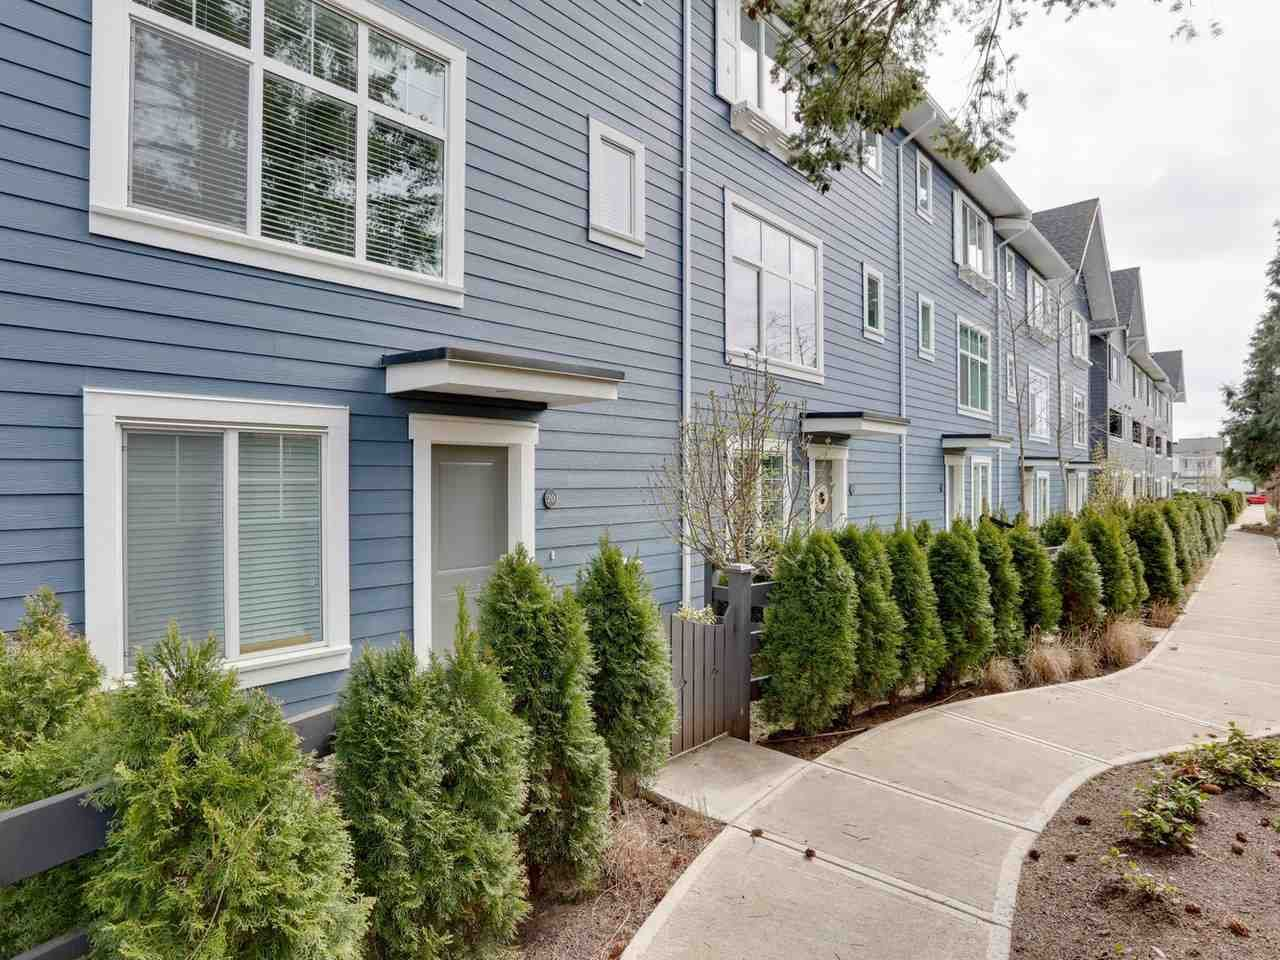 """Main Photo: 20 16323 15 Avenue in Surrey: King George Corridor Townhouse for sale in """"Dawson's Creek"""" (South Surrey White Rock)  : MLS®# R2562767"""